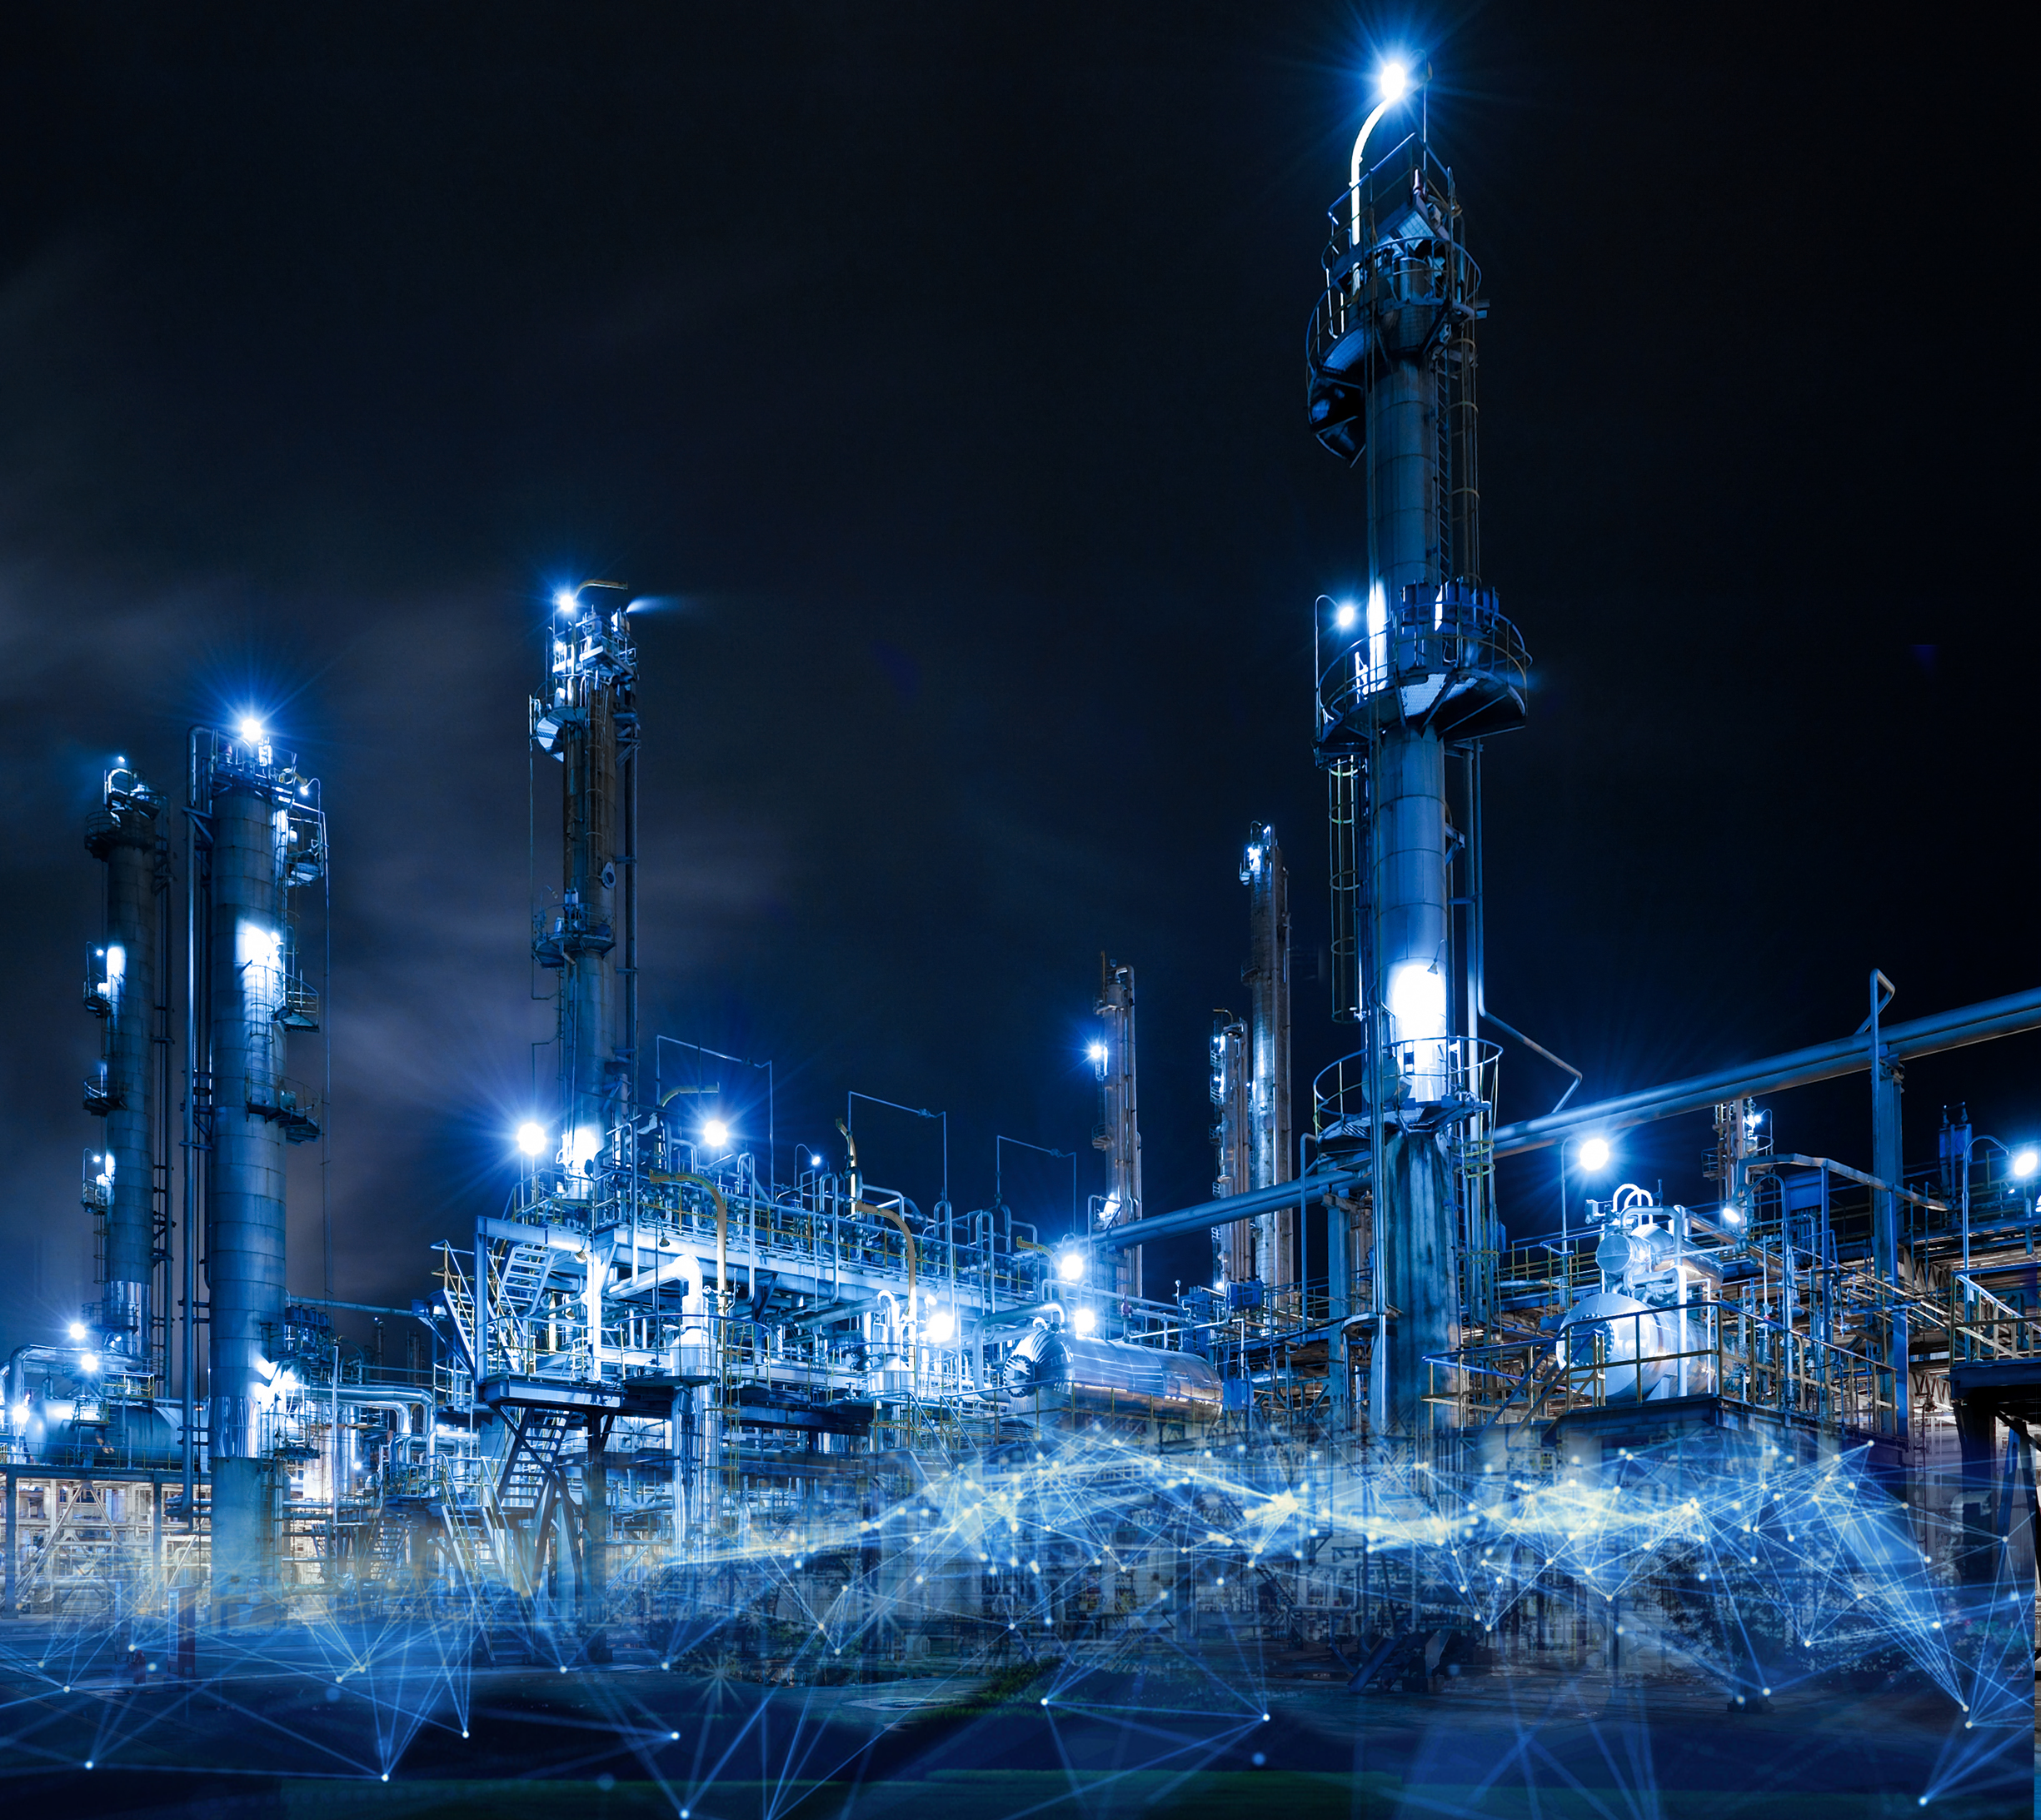 Oil and gas refinery